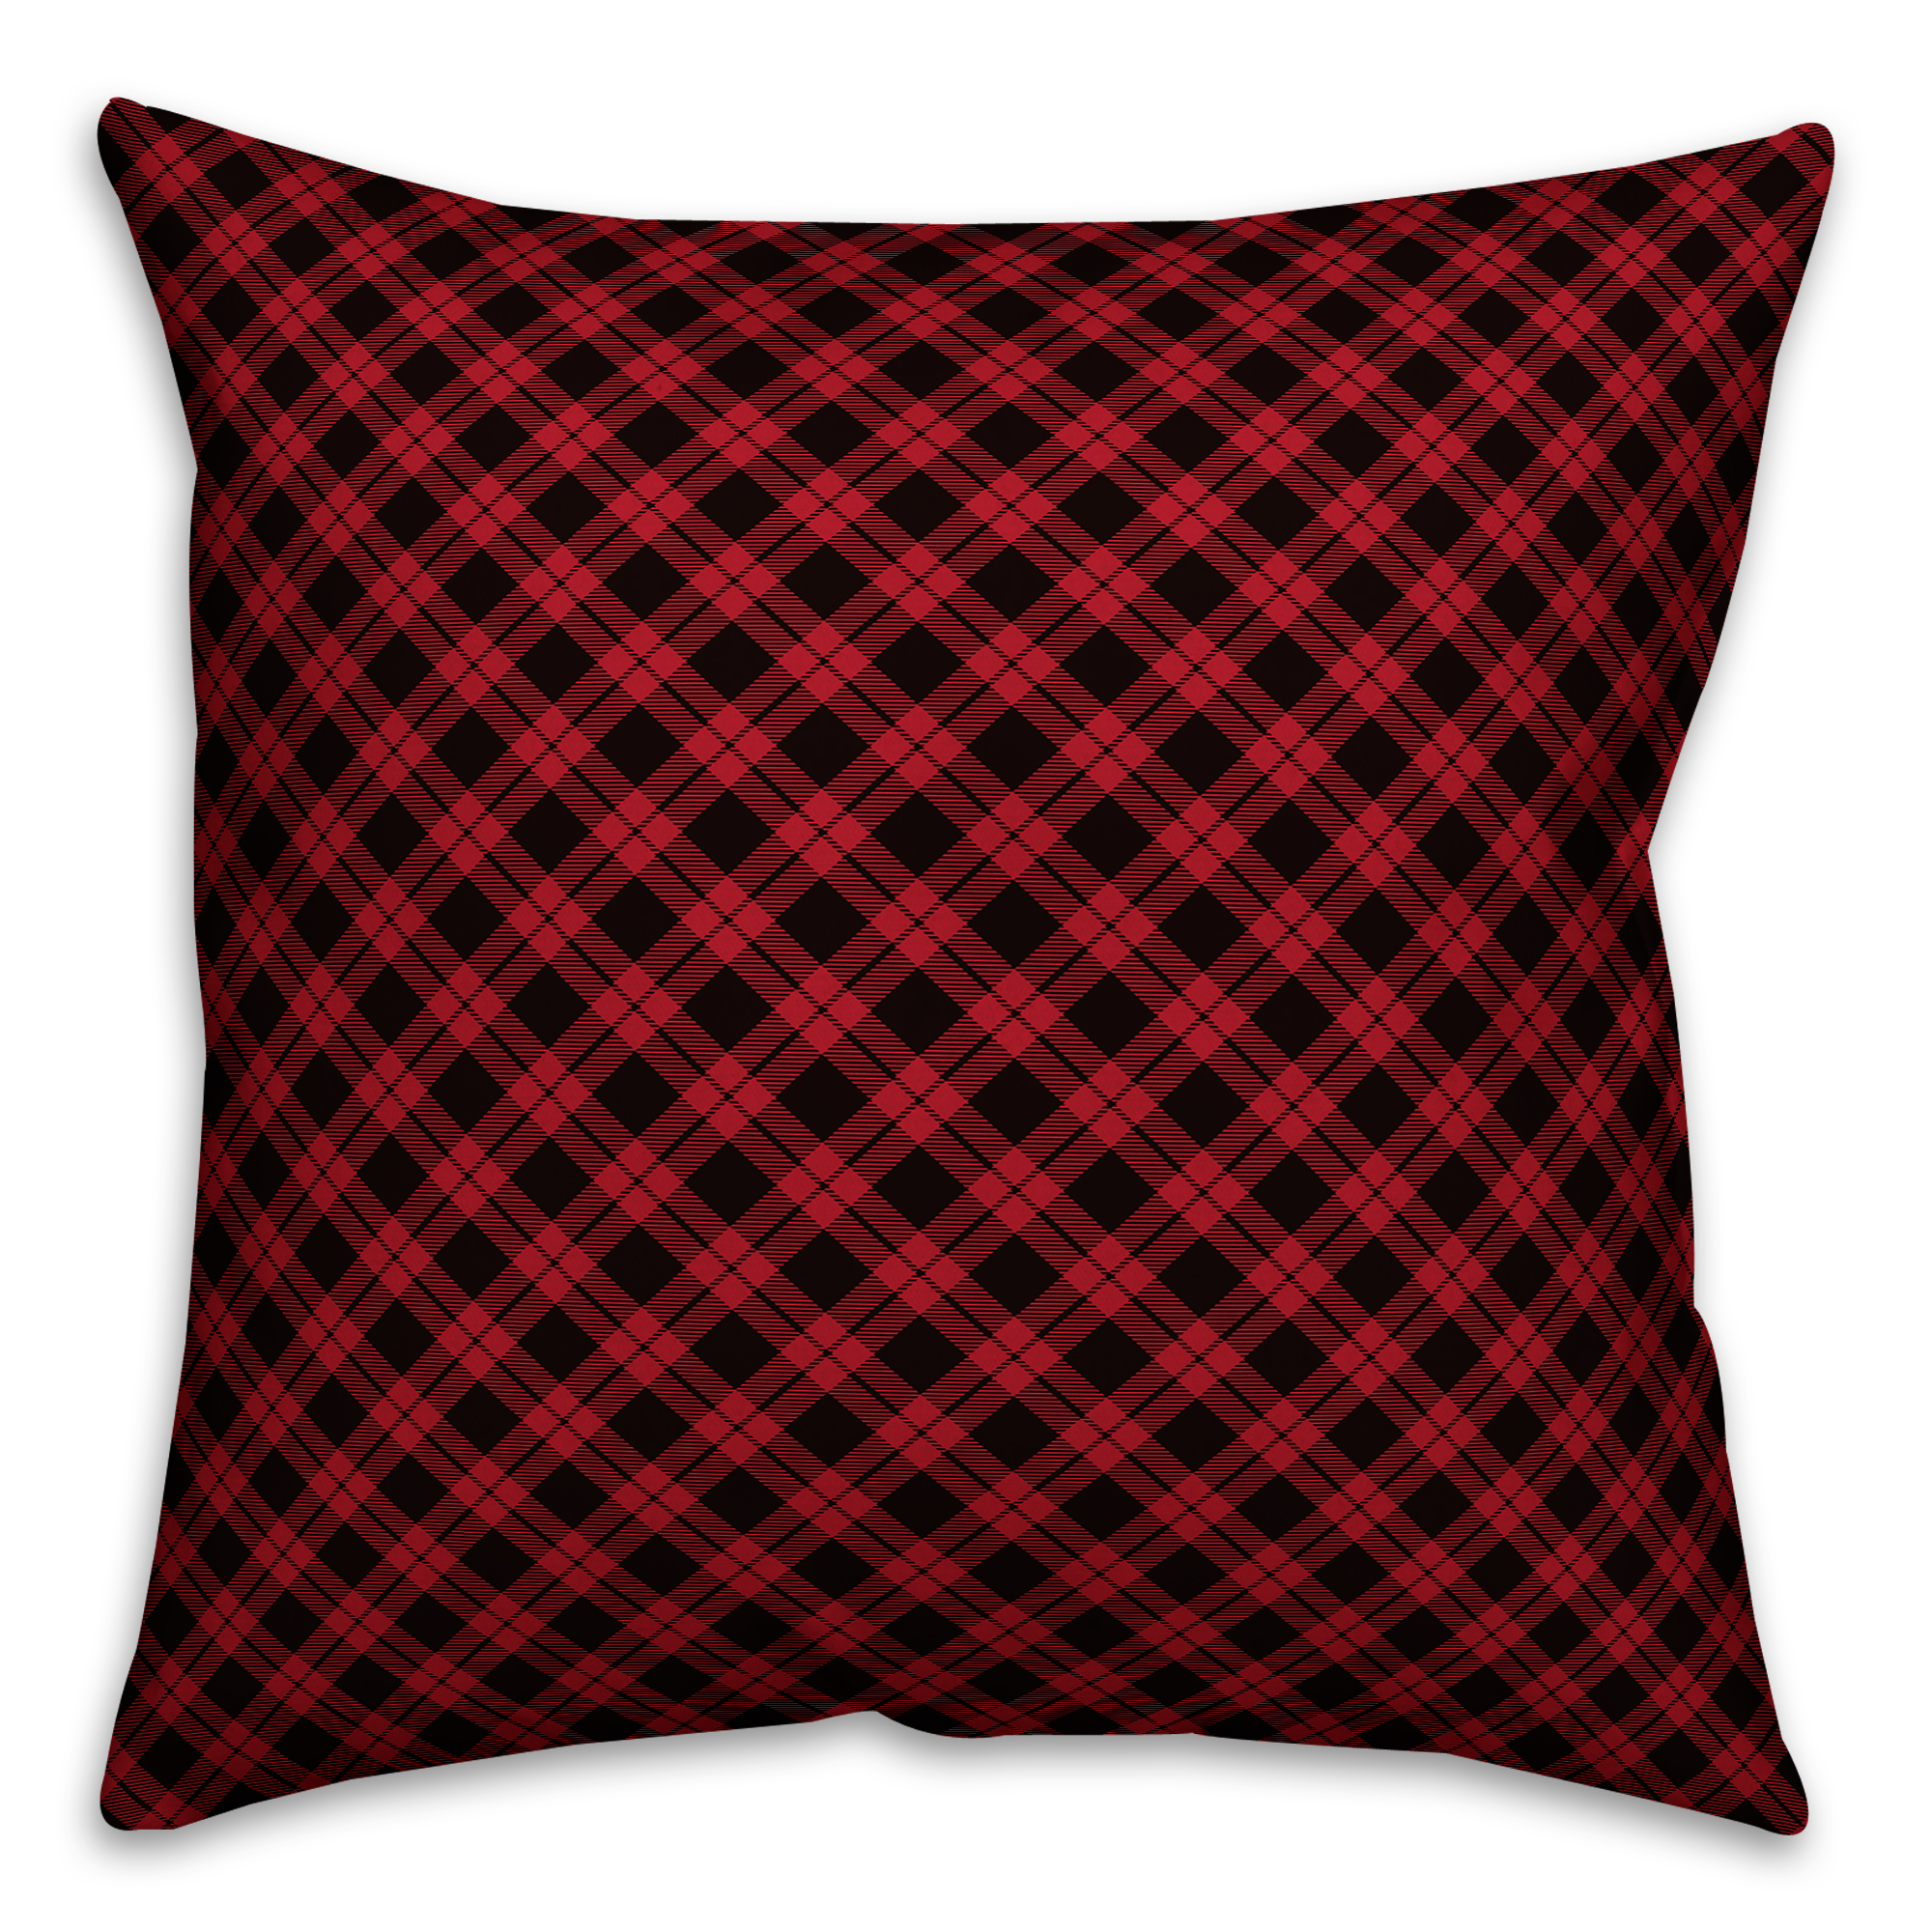 Red and Black Gingham Buffalo Check Plaid 18x18 Spun Poly Pillow